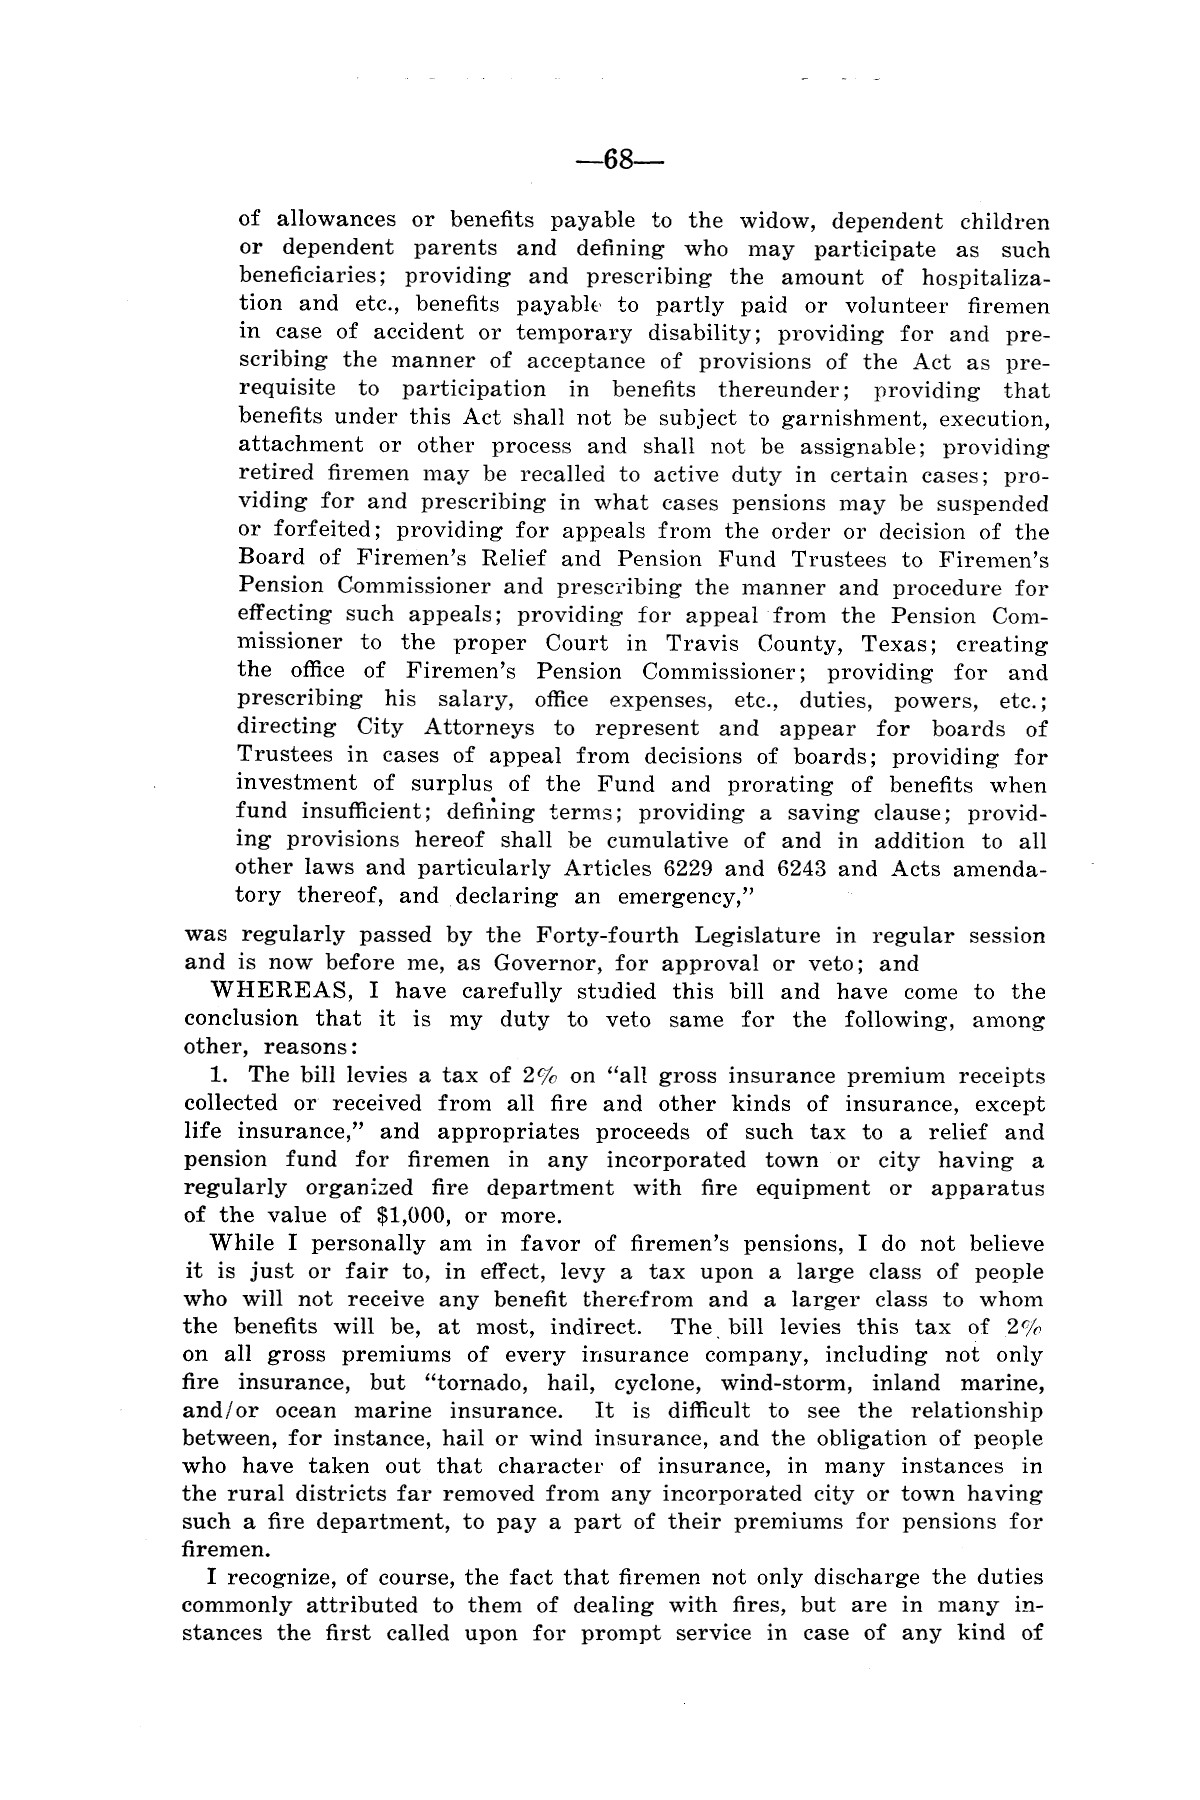 Legislative Messages of Hon. James V. Allred, Governor of Texas 1935-1939                                                                                                      [Sequence #]: 67 of 263